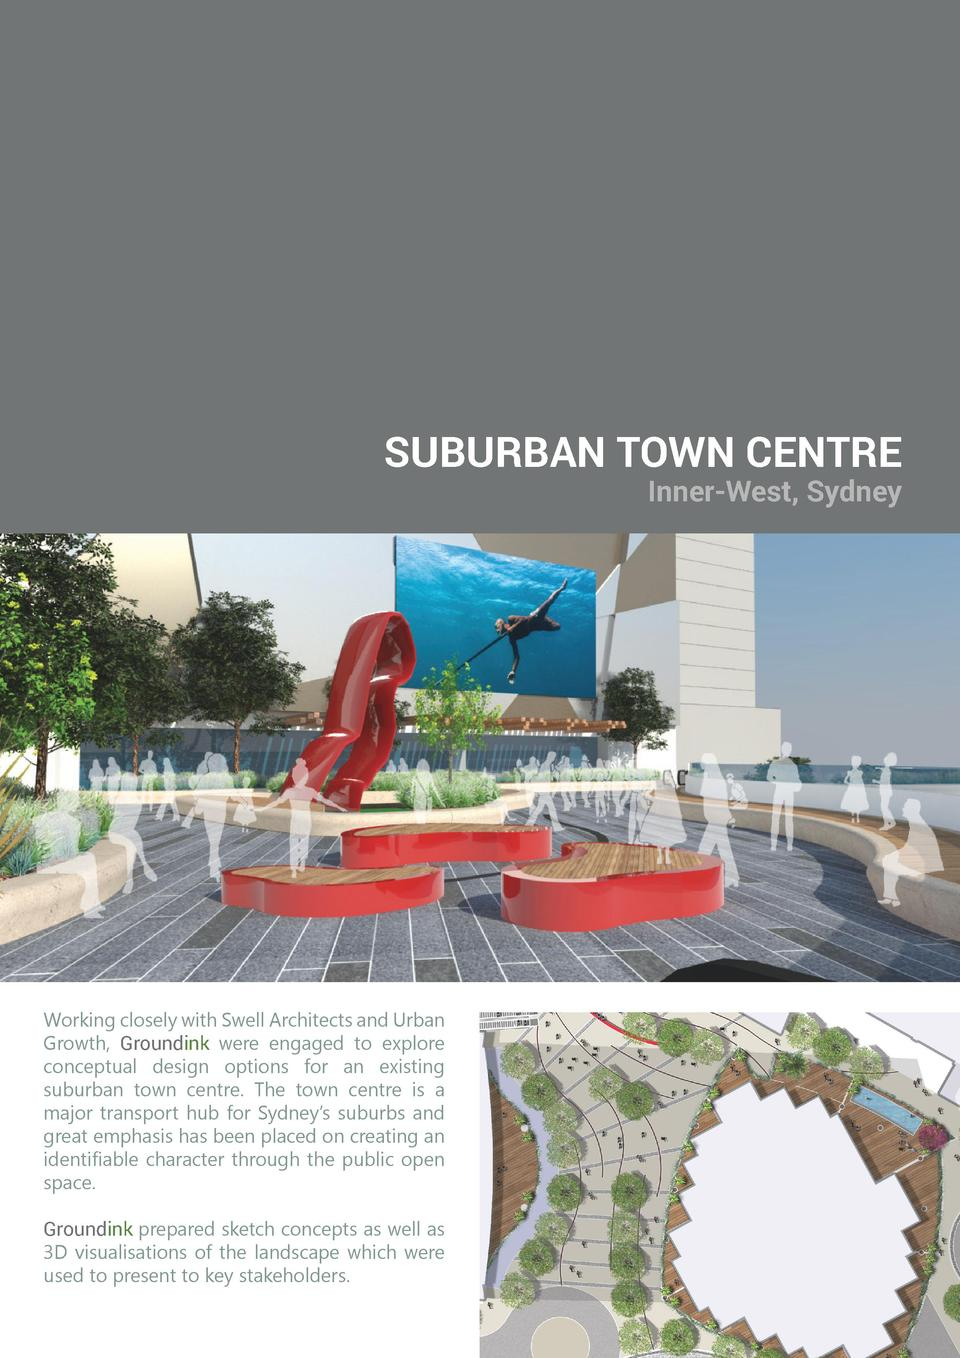 SUBURBAN TOWN CENTRE  Inner-West, Sydney  Working closely with Swell Architects and Urban Growth, Groundink were engaged t...